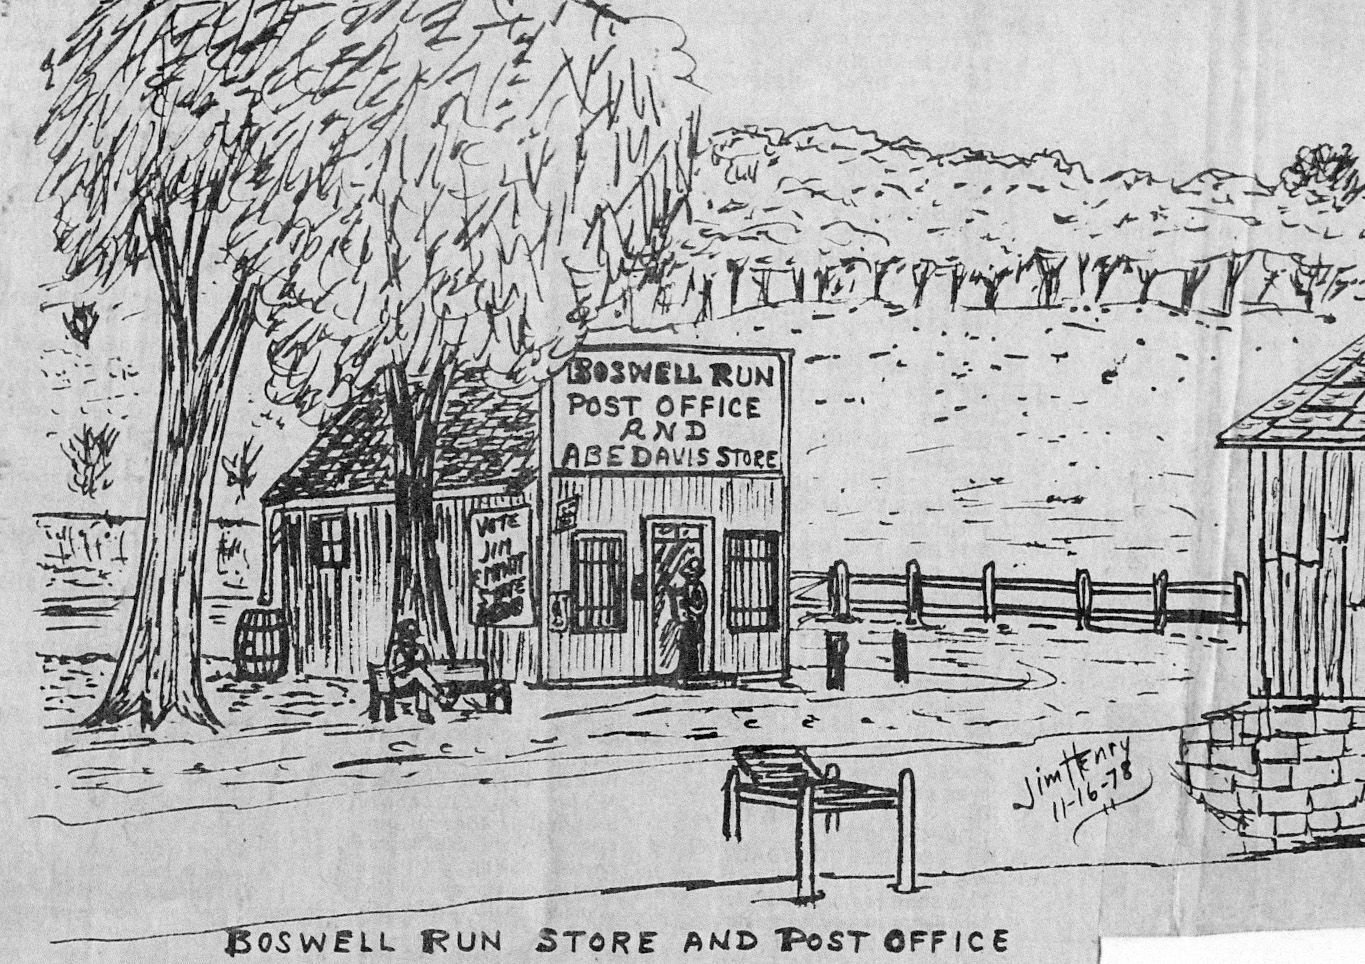 Boswell Store sketch